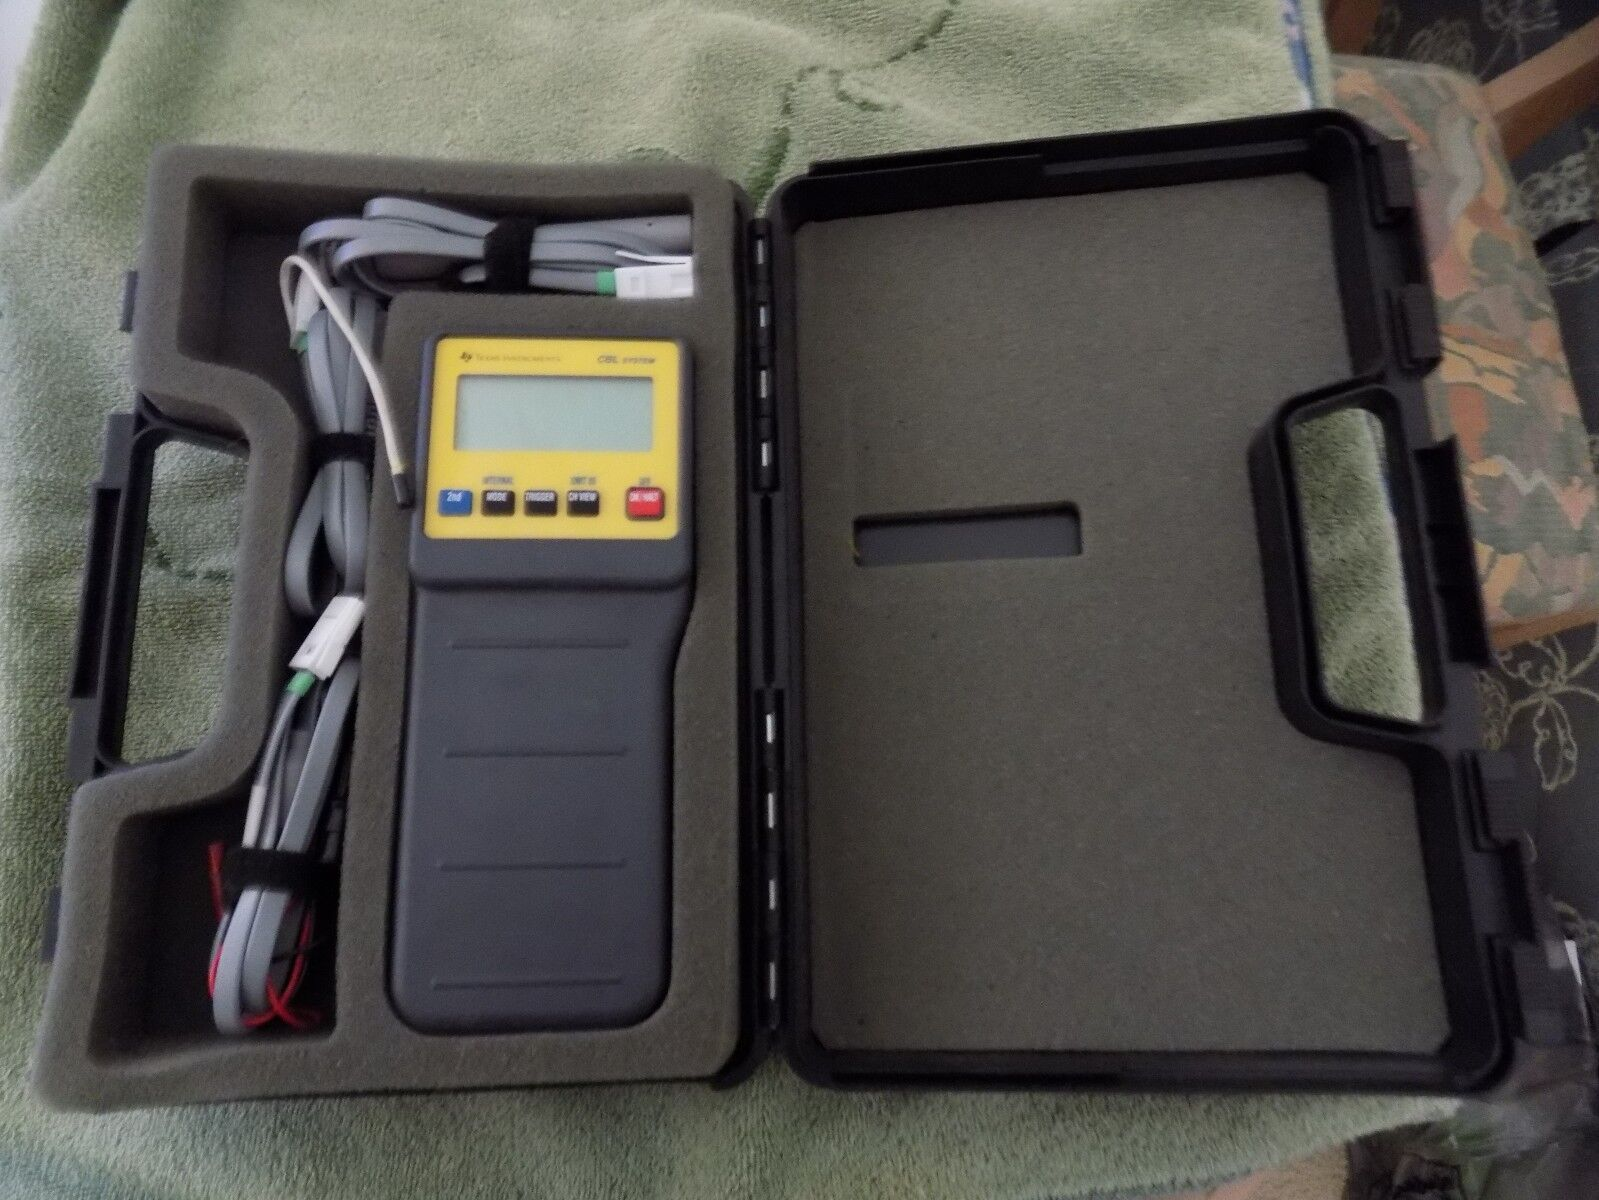 Texas Instruments CBL System With Carrying Case